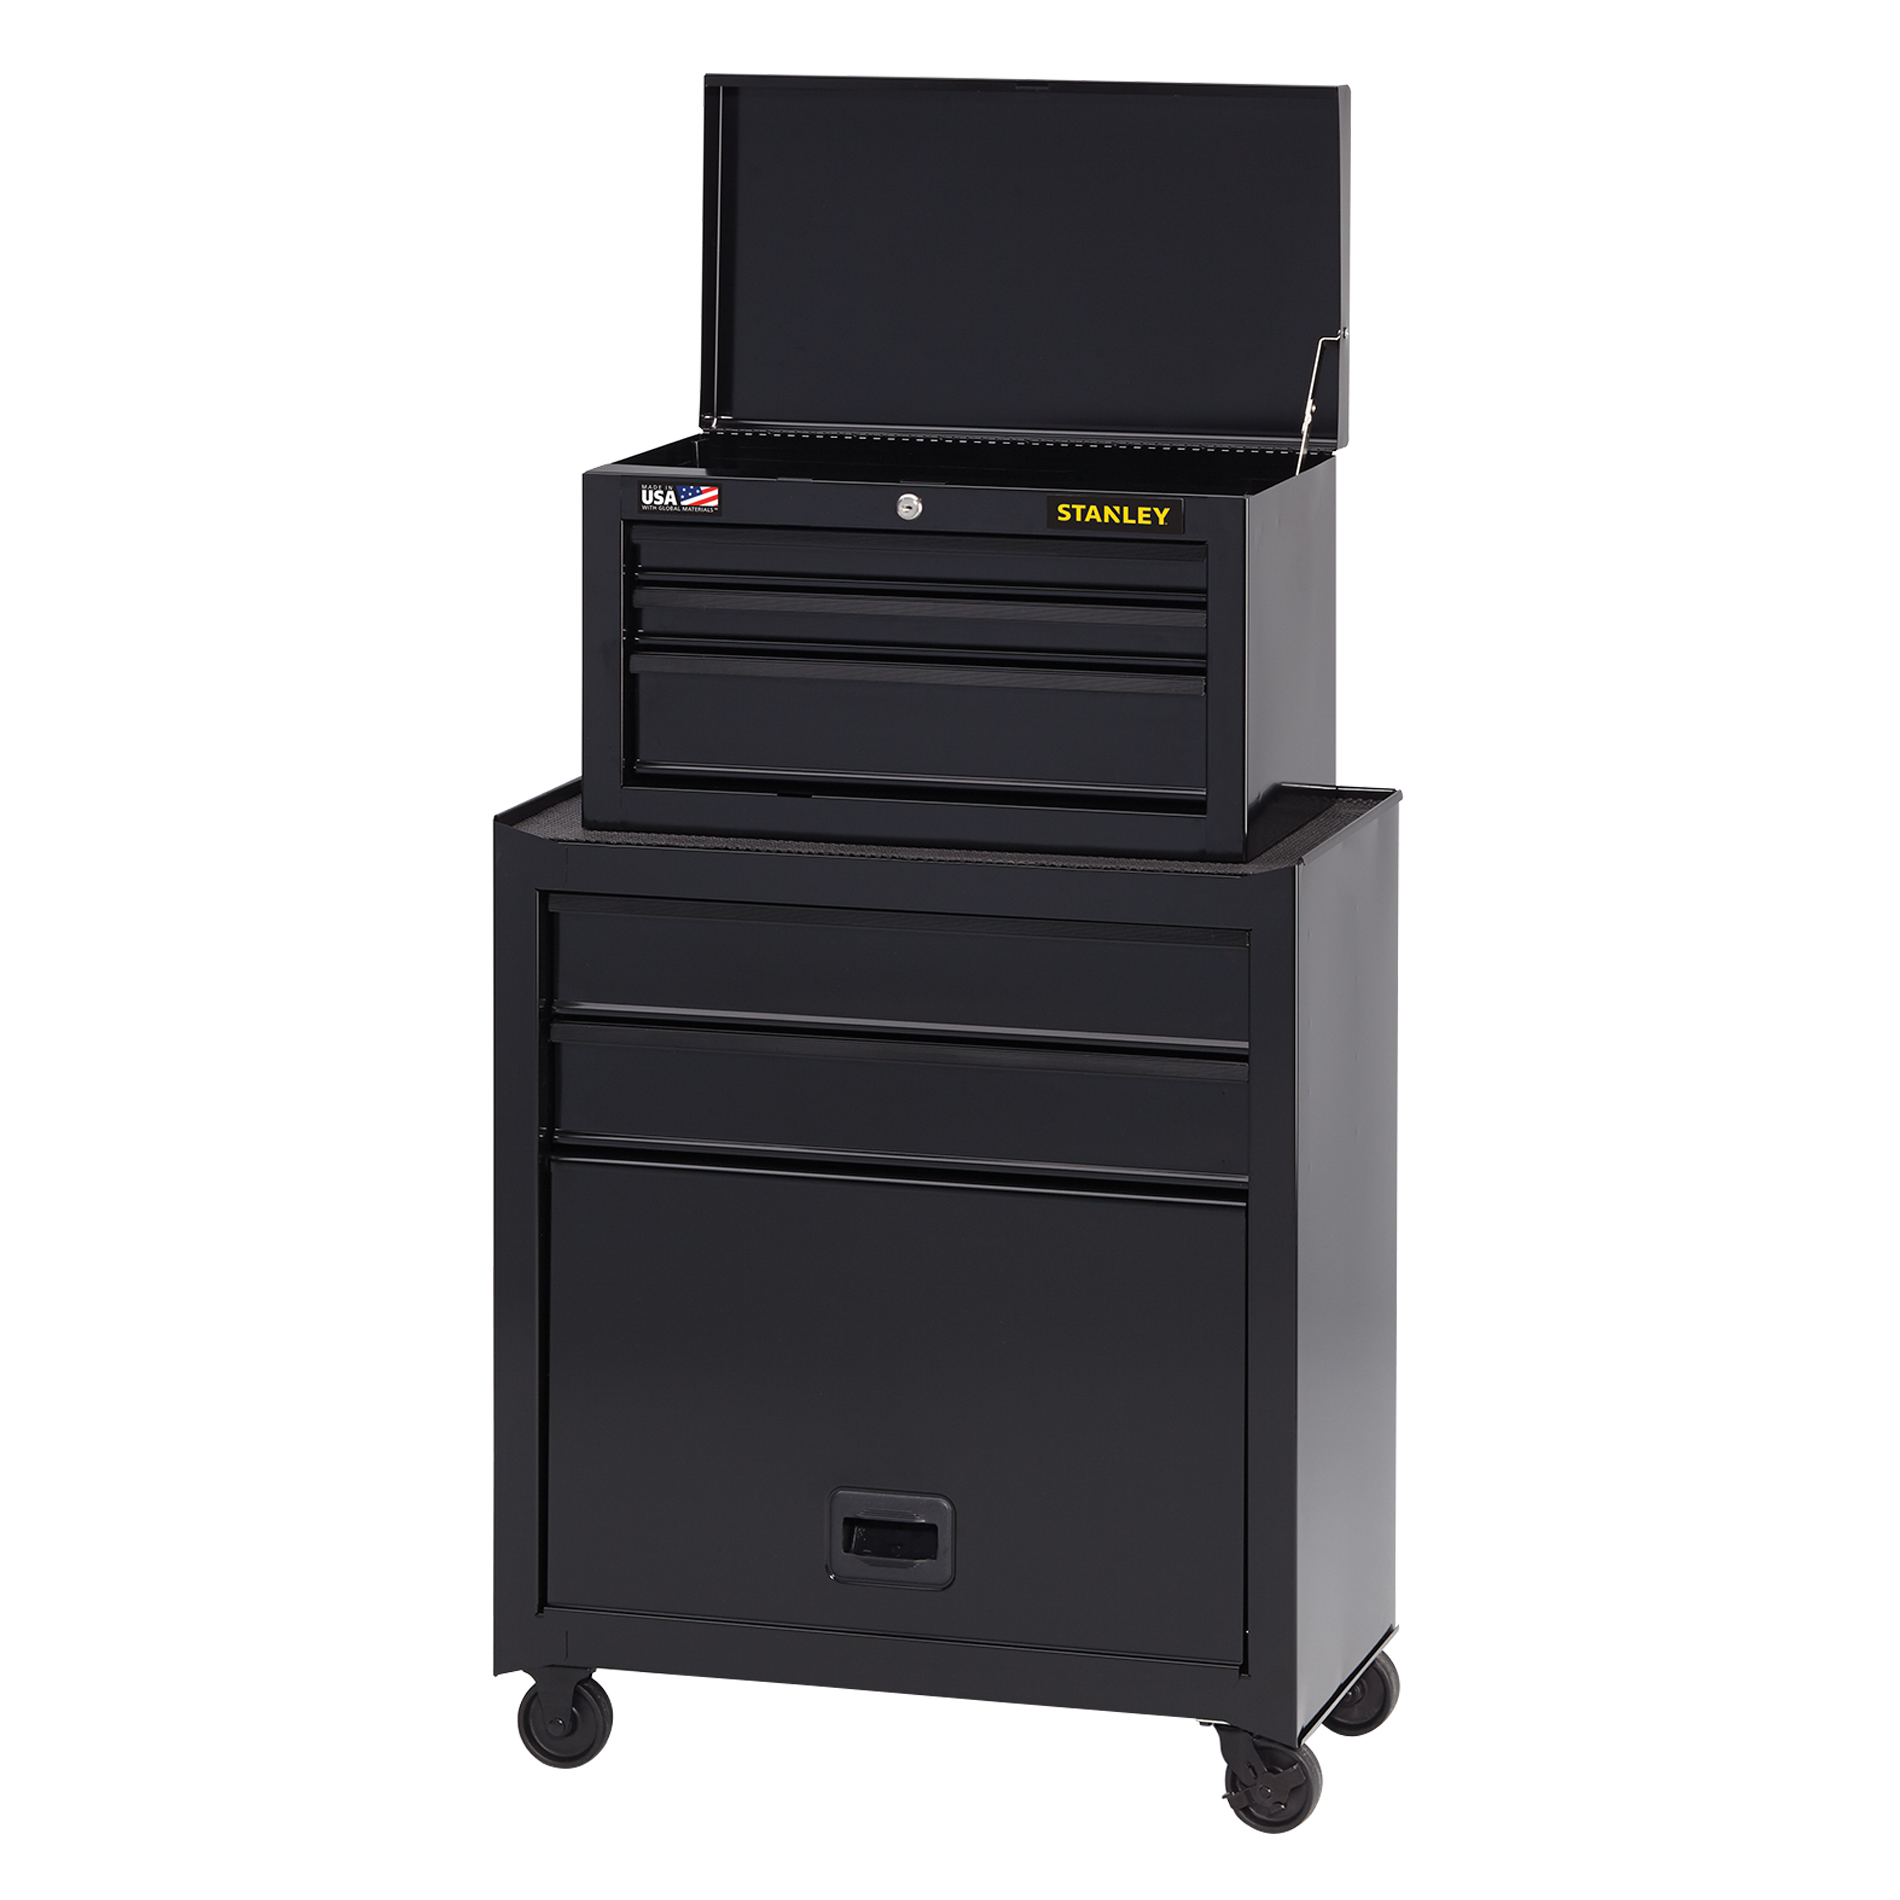 Genial Stanley 5 Drawer Rolling Tool Chest And Cabinet Combination